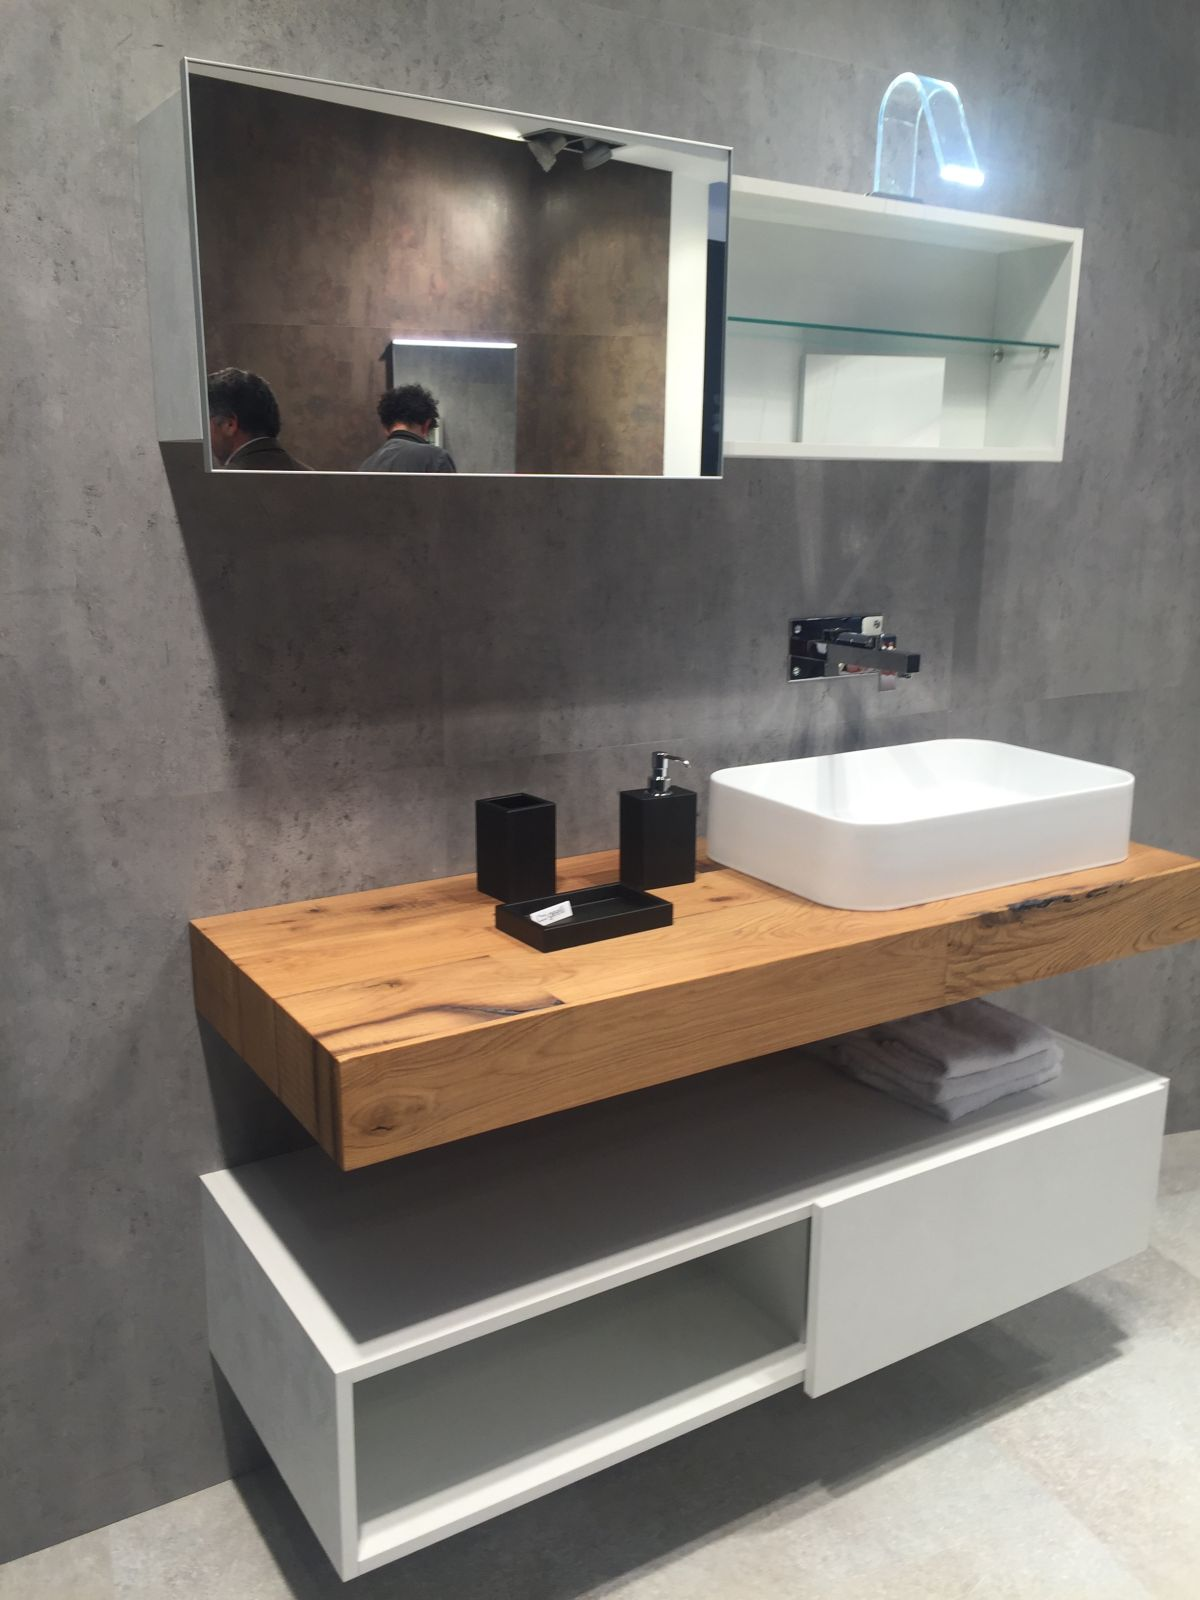 Stylish ways to decorate with modern bathroom vanities for Plan de travail salle de bain bois